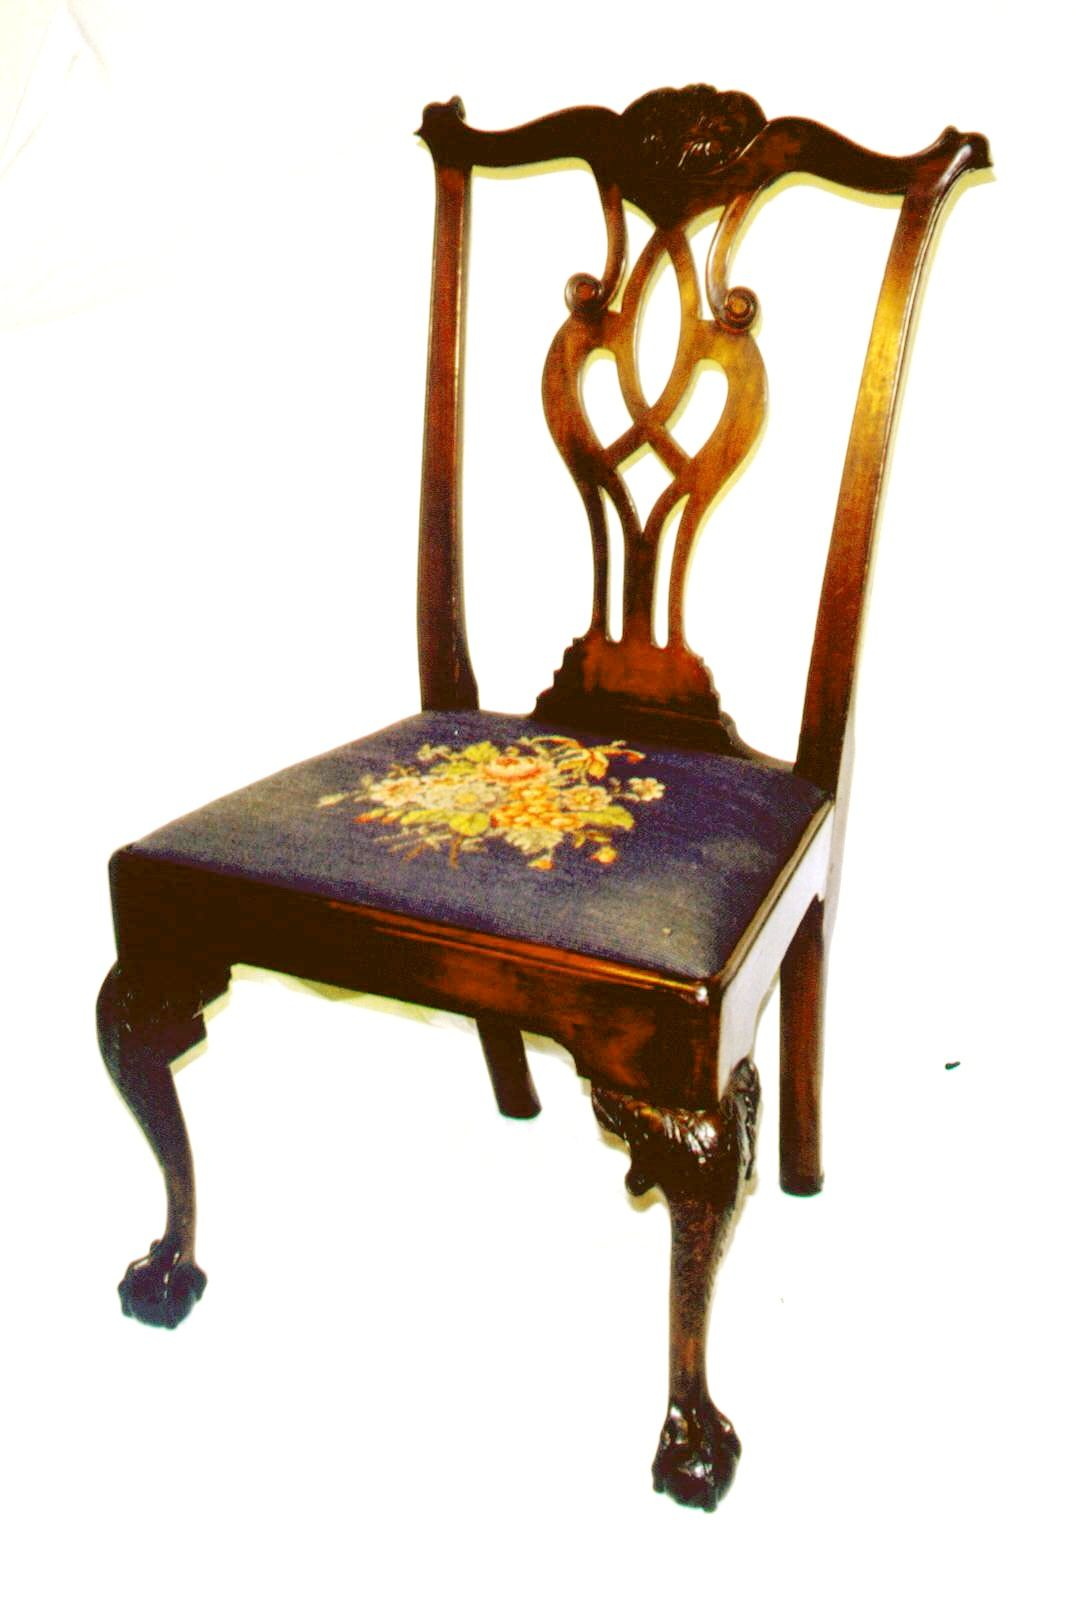 American Antique Furniture - American Antique Furniture Retro, Vintage, Antique, Ancient And